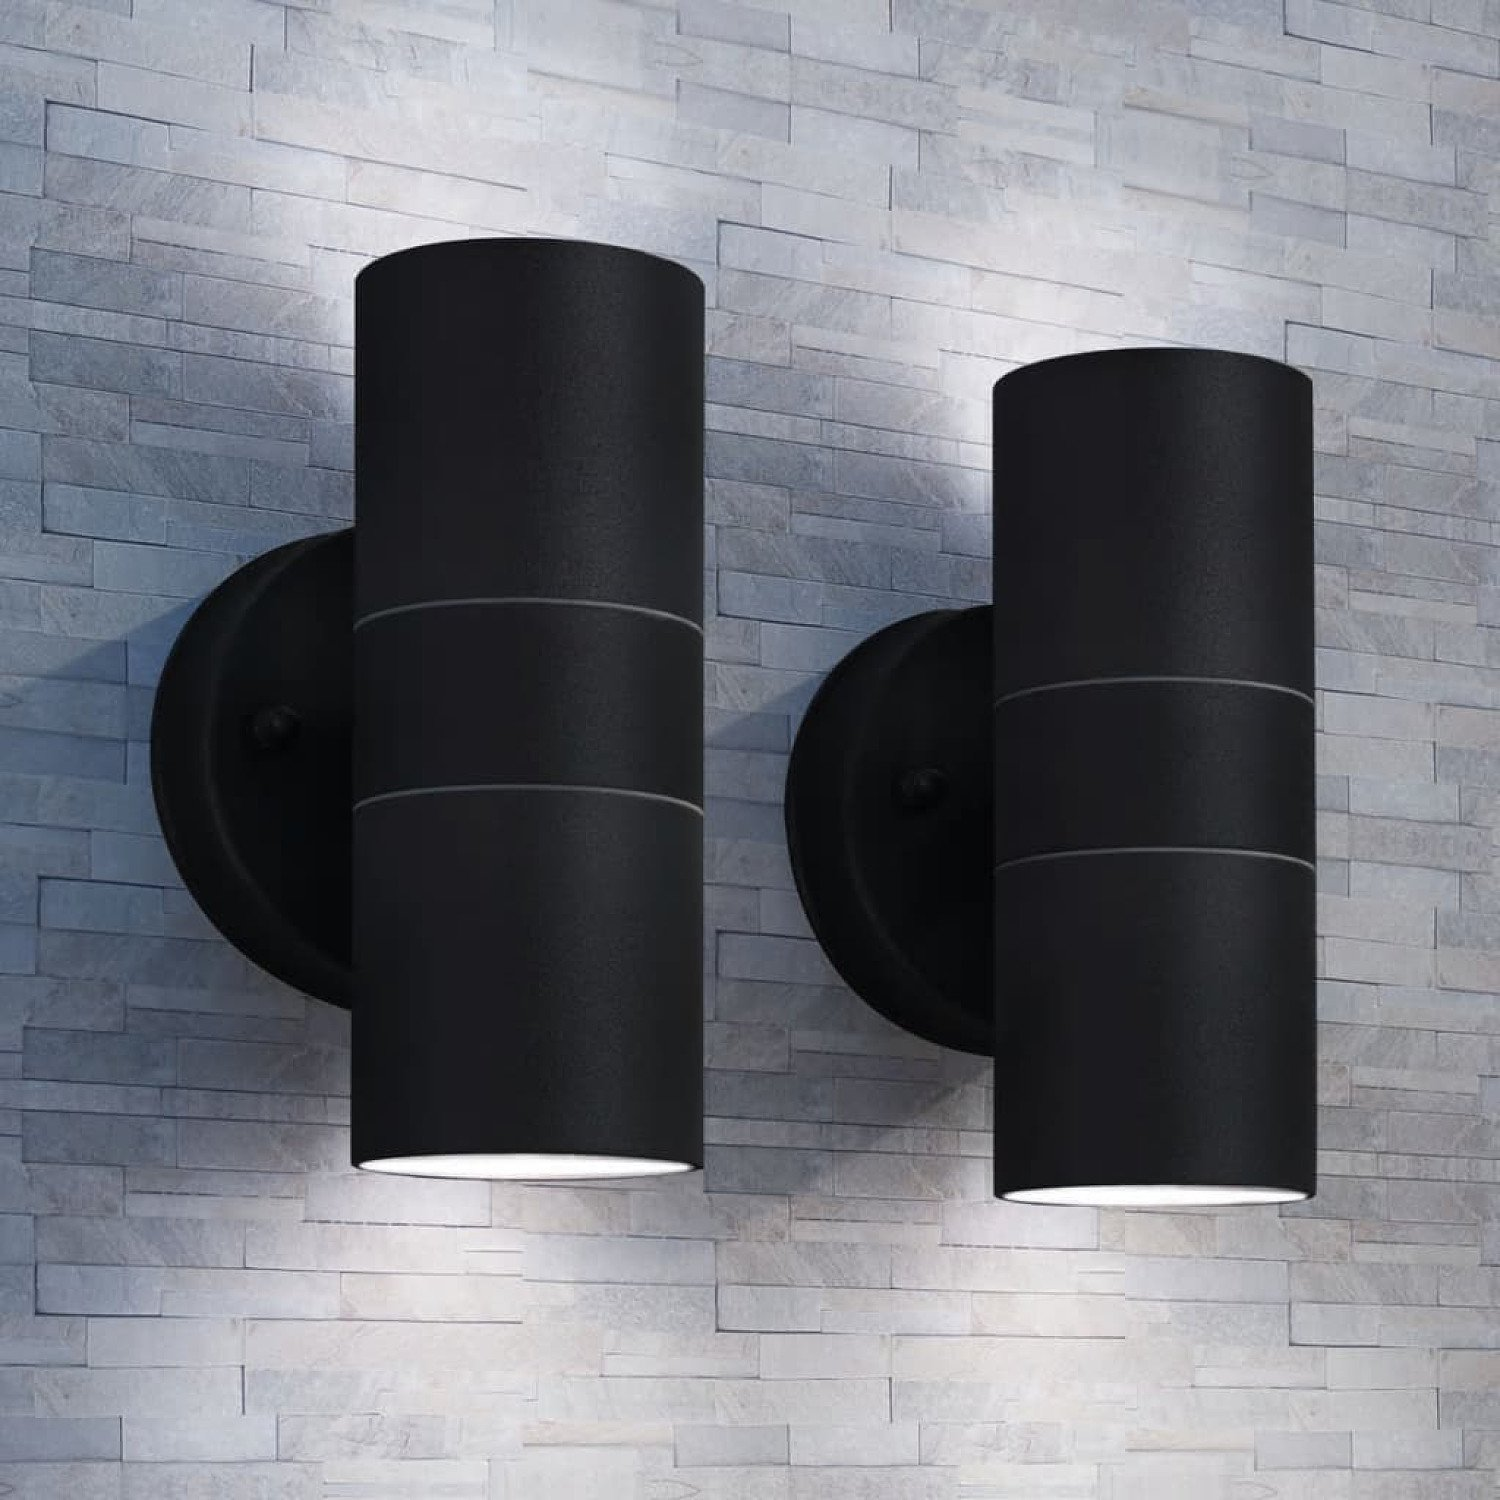 Outdoor Wall Lights x 2 Stainless Steel Up/Downwards £36